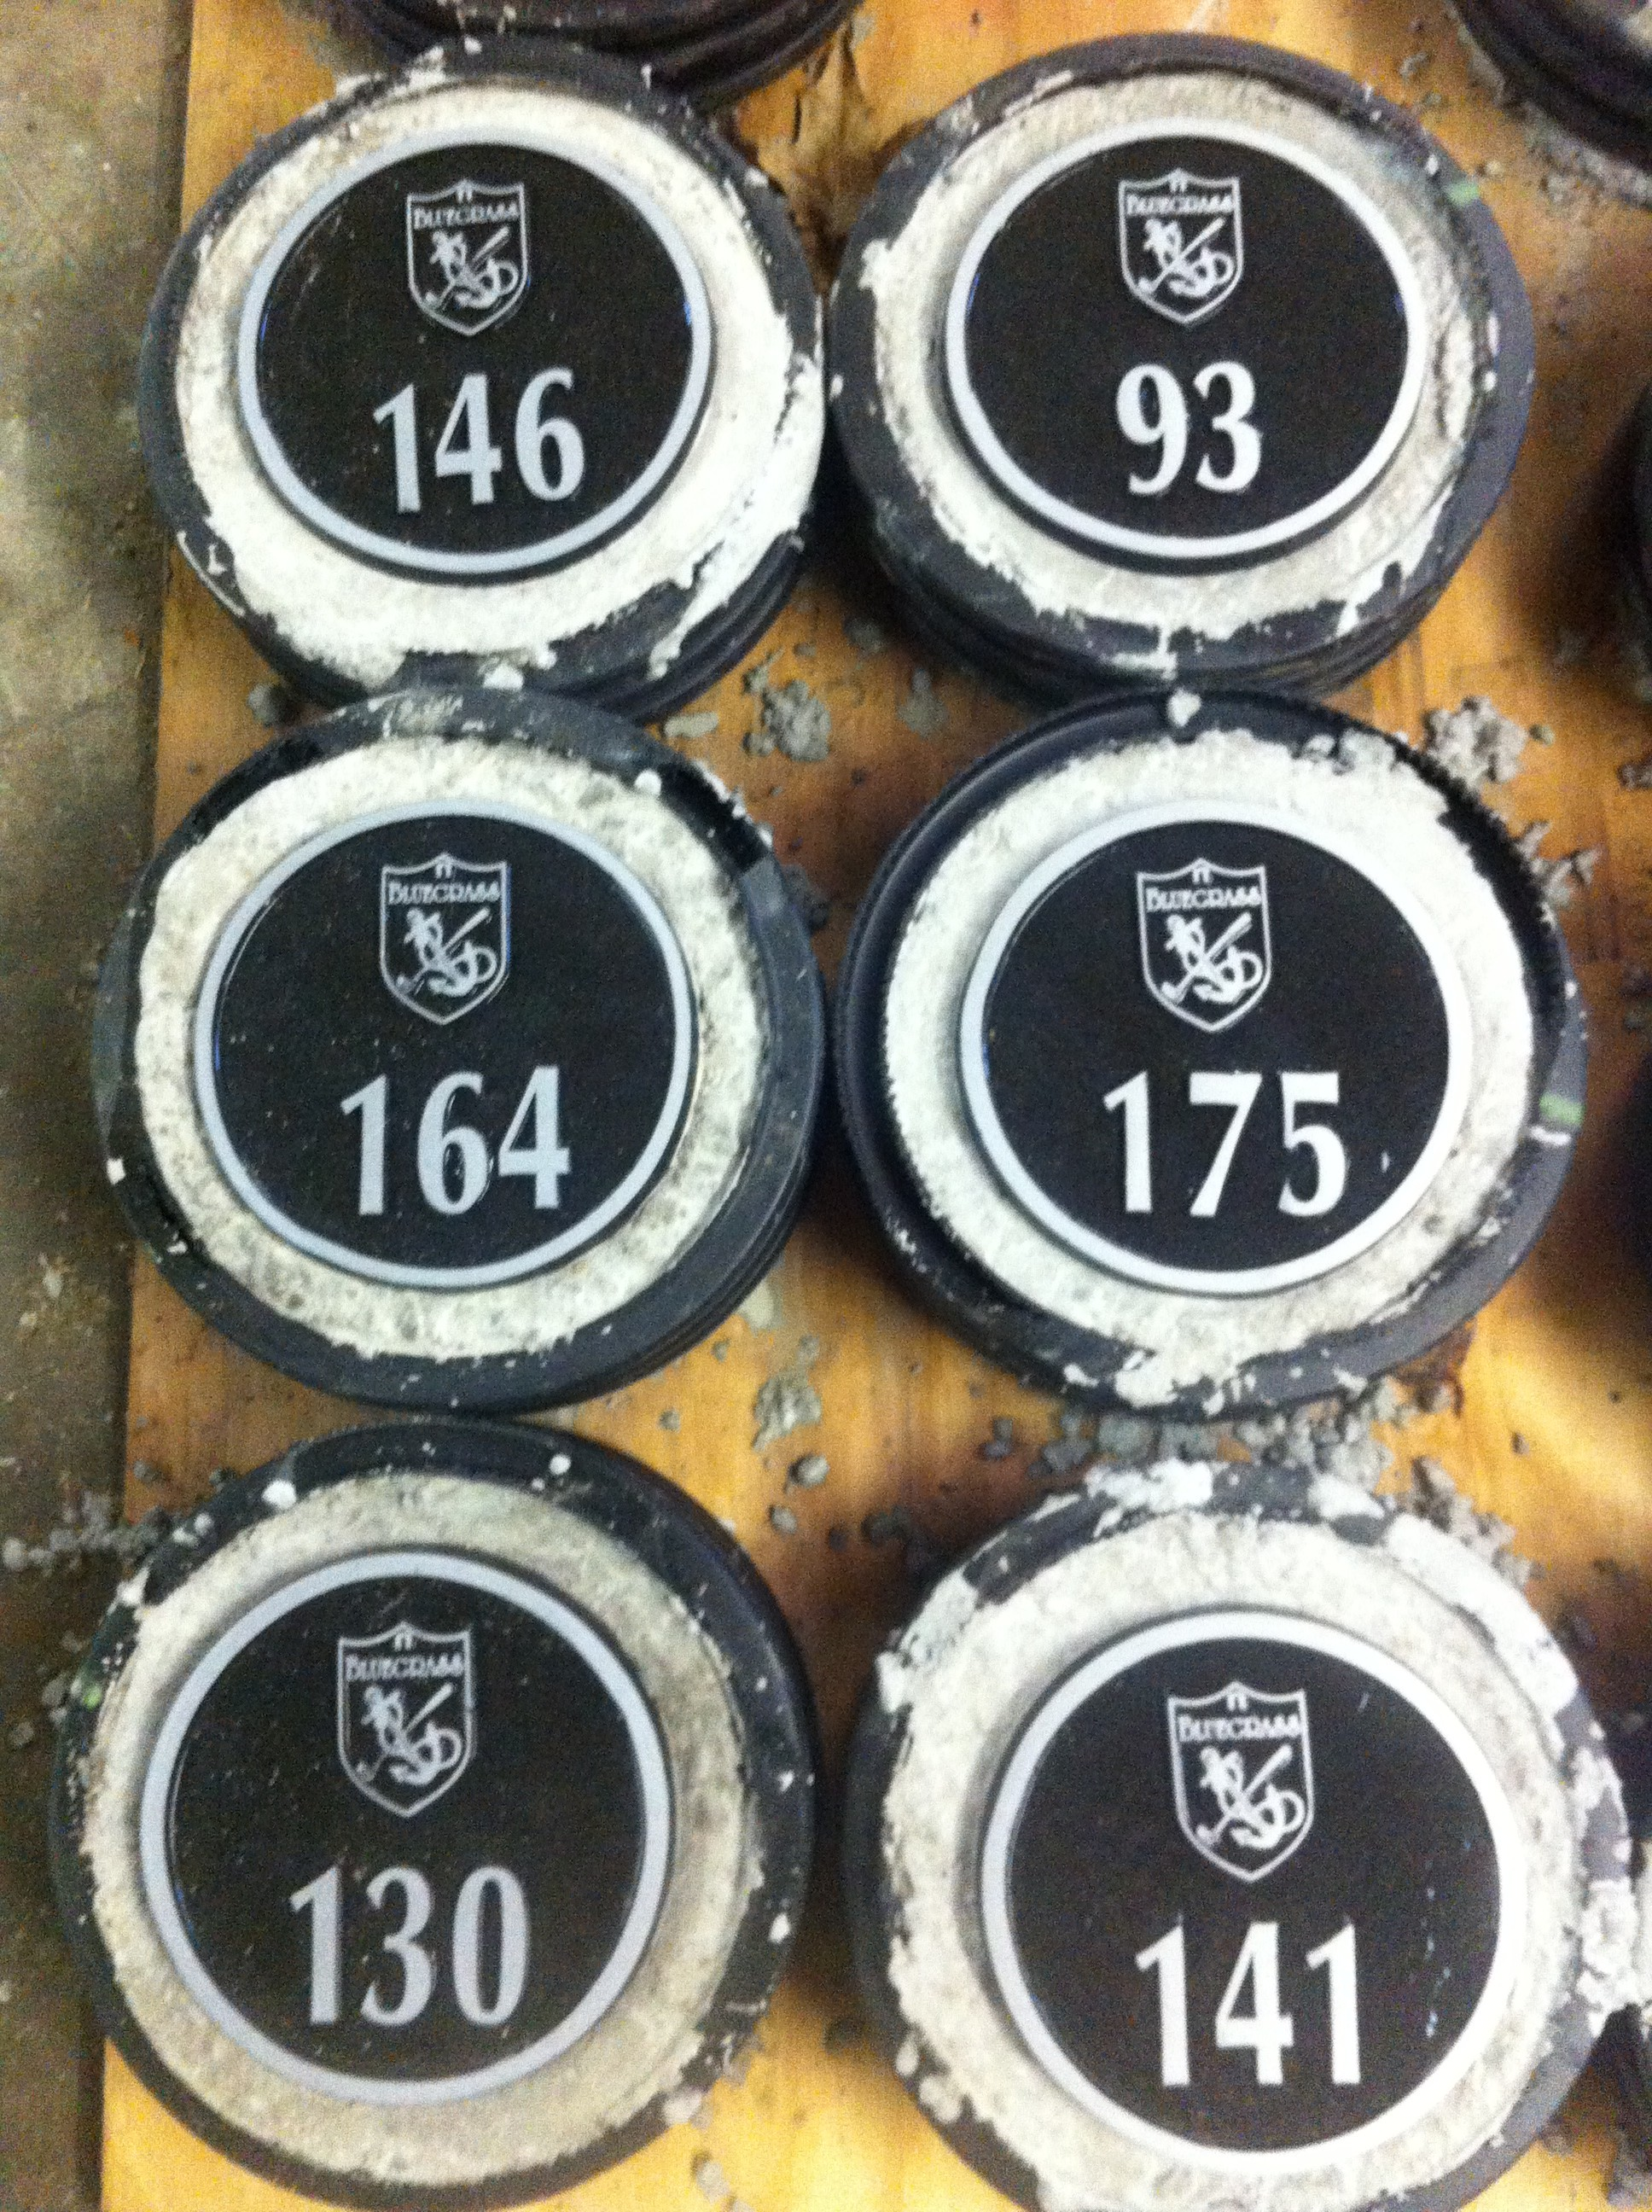 Yardage Plates Ready for the Tees